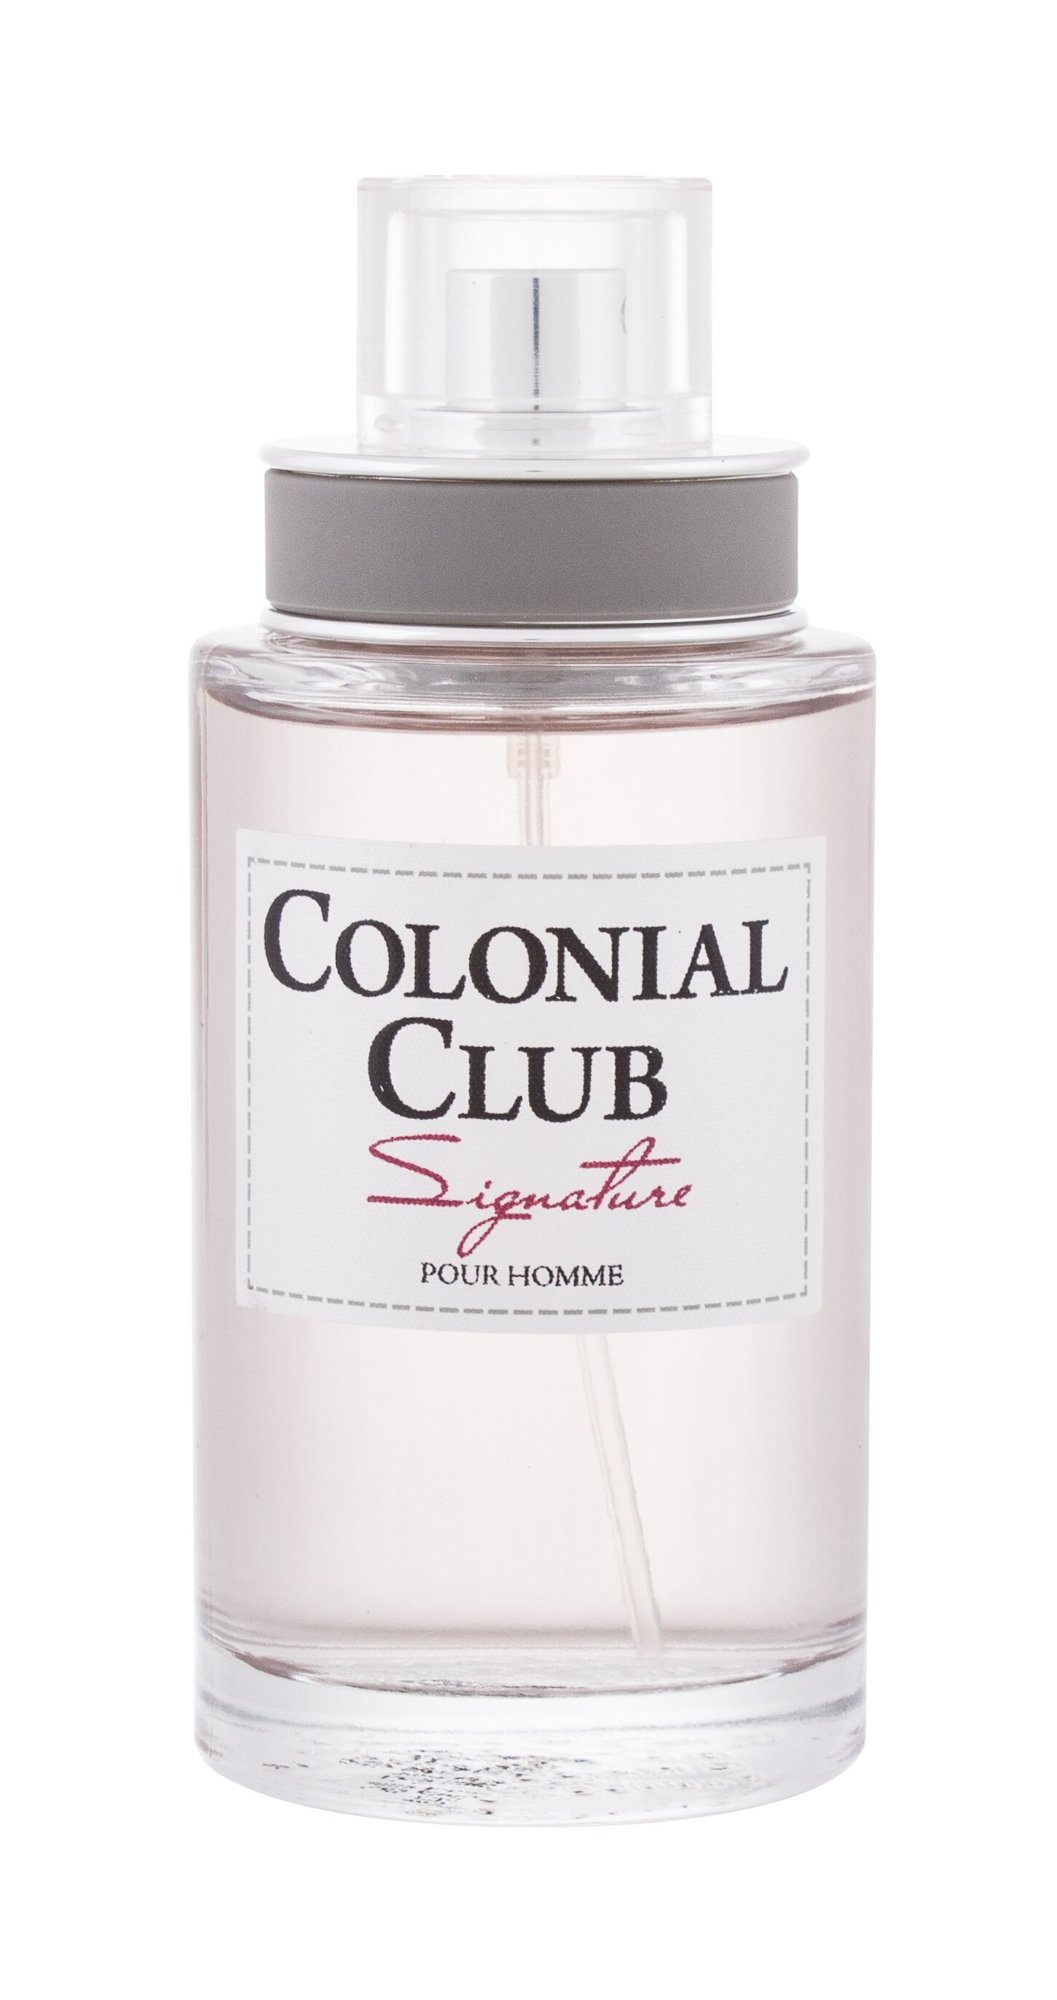 Jeanne Arthes Colonial Club Signature, edt 100ml